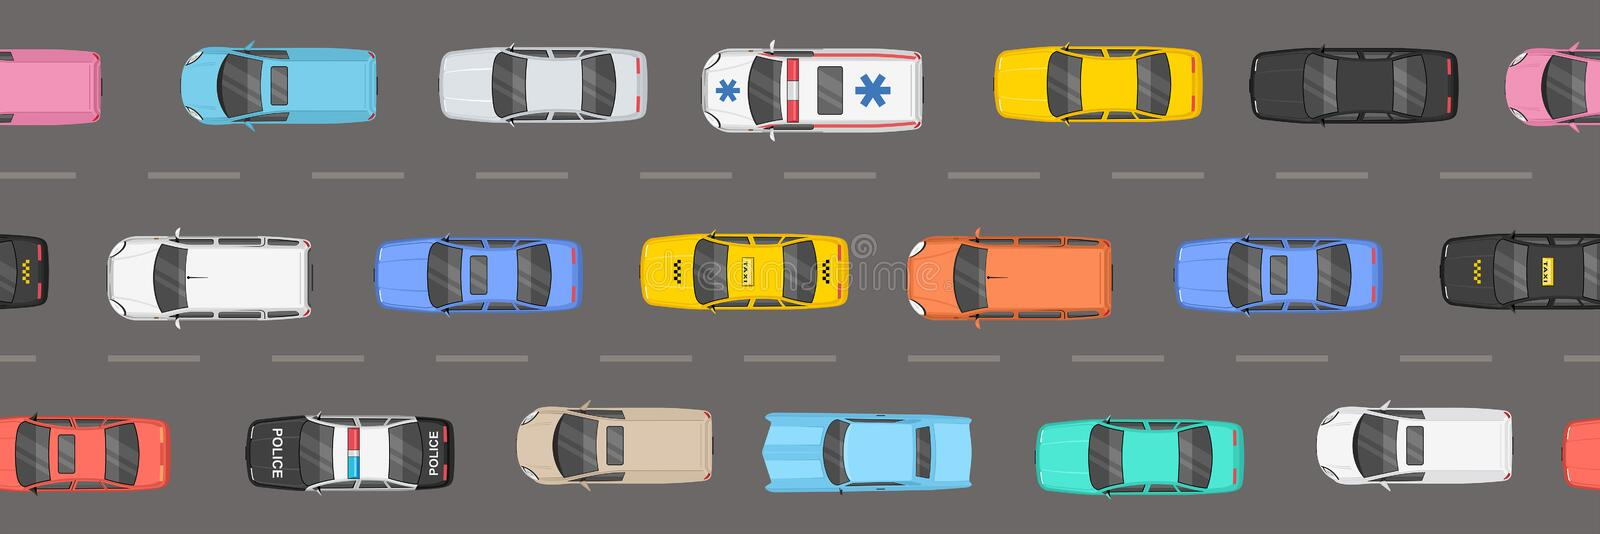 Top view of Traffic road jam. Top view of cars of different colours and shapes on grey background. Traffic Jam On Highway Top View royalty free illustration